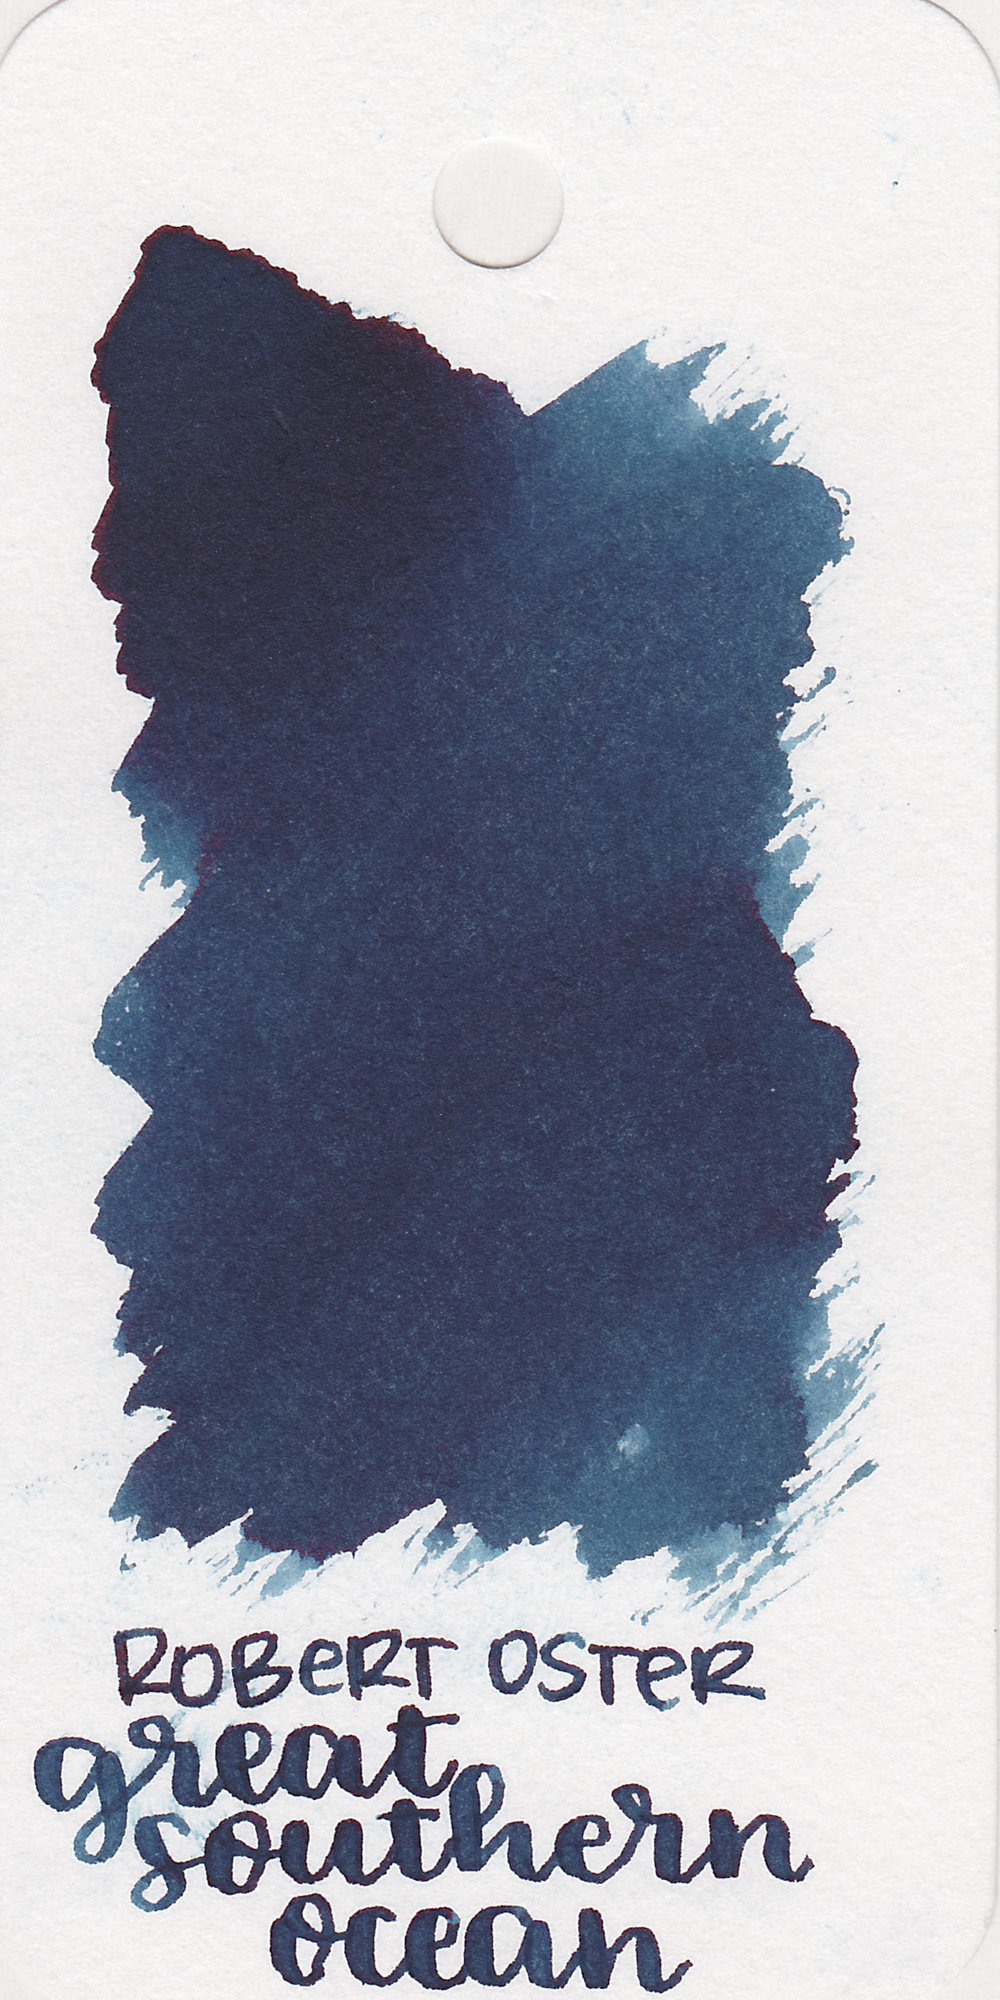 The color: - Great Southern Ocean is a beautiful dark blue. Robert Oster does a great job with his blues.